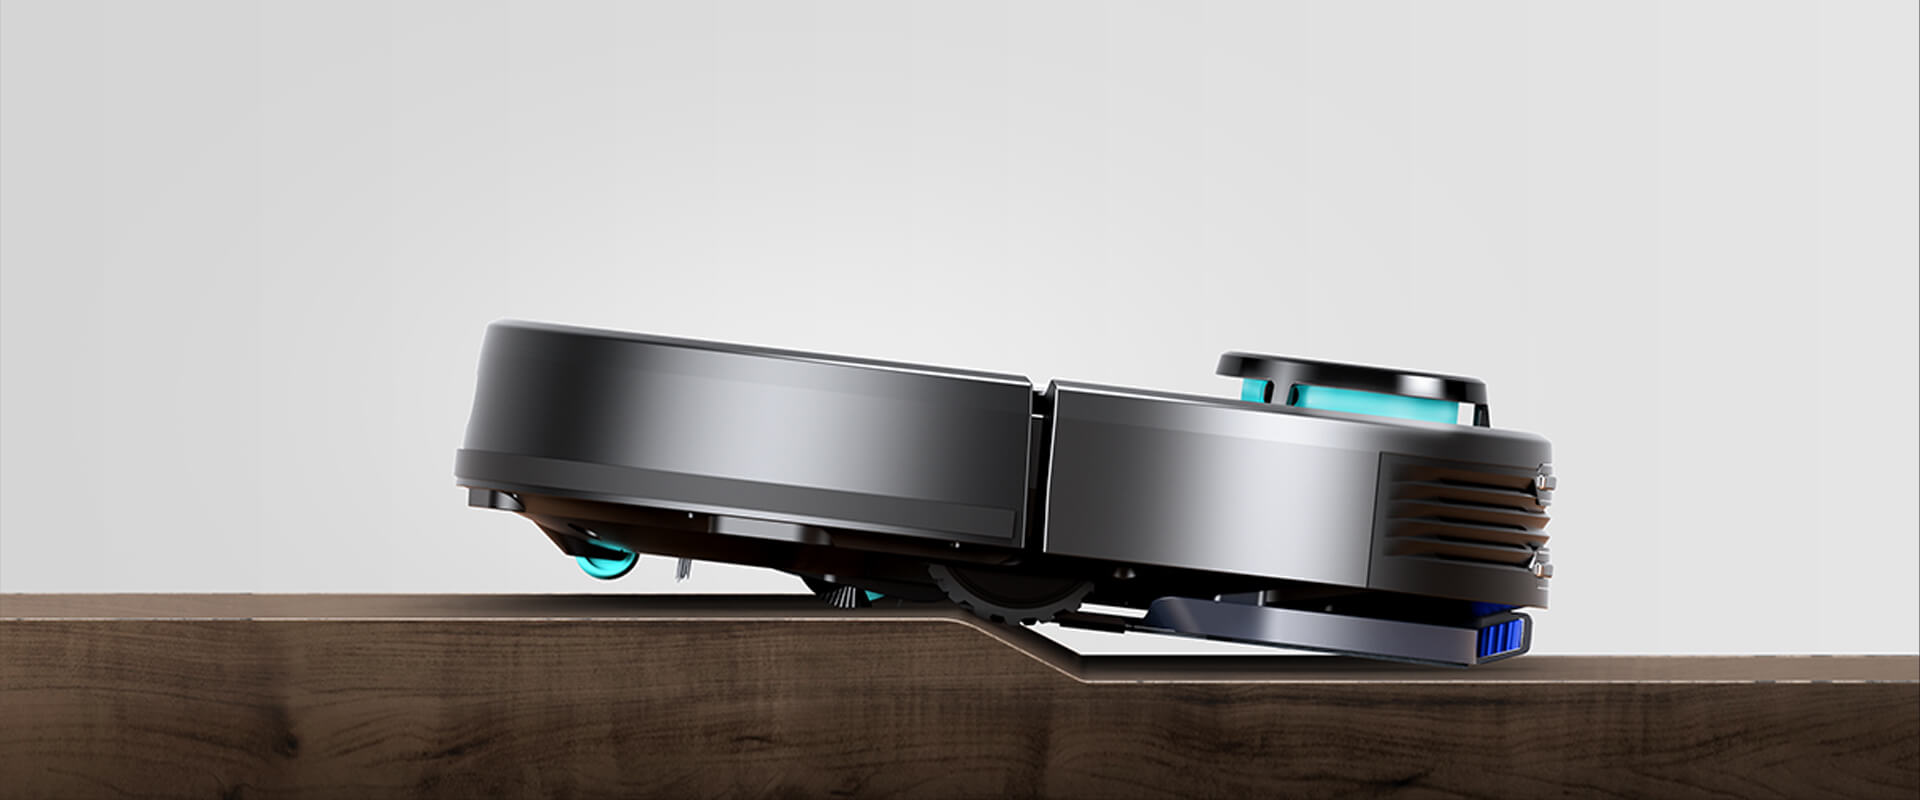 Viomi V2 Pro house cleaning robot with  over 2cm Climbing Obstacles